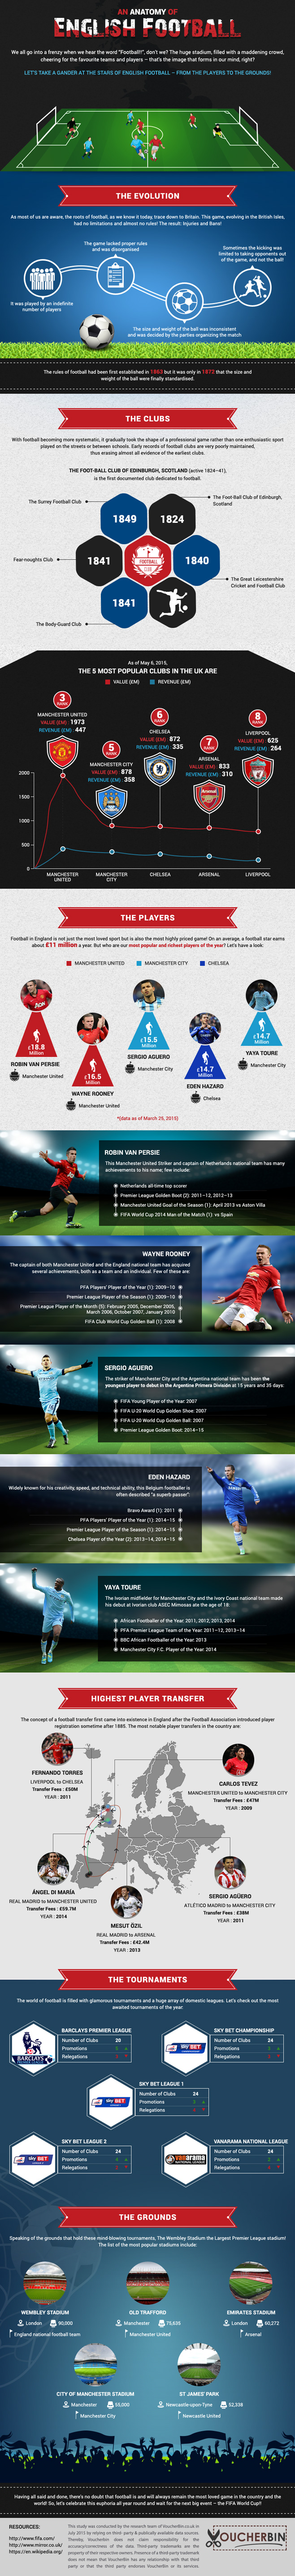 voucherbin-infographic-an-anatomy-of-english-football